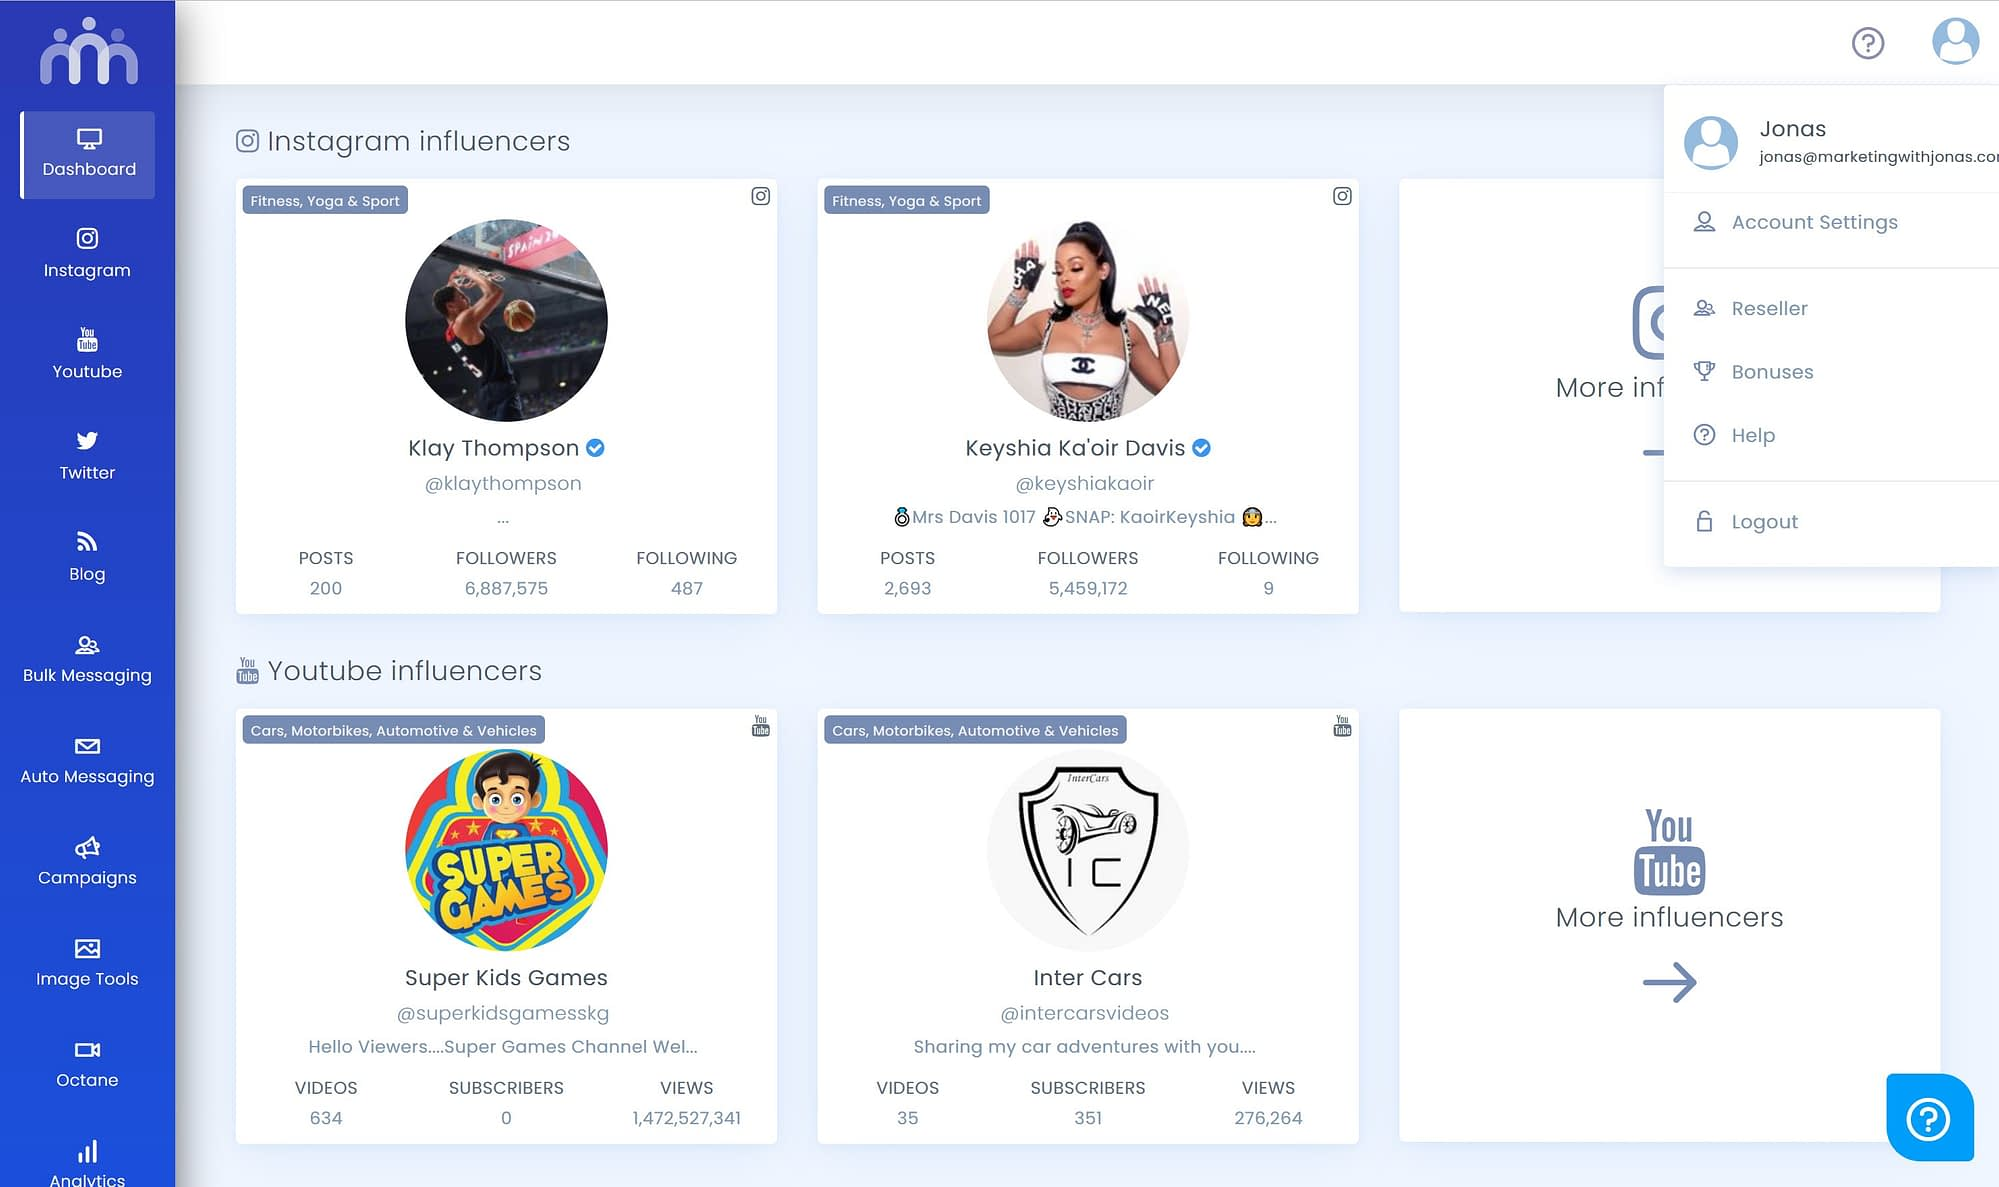 Influencers Hub Dashboard